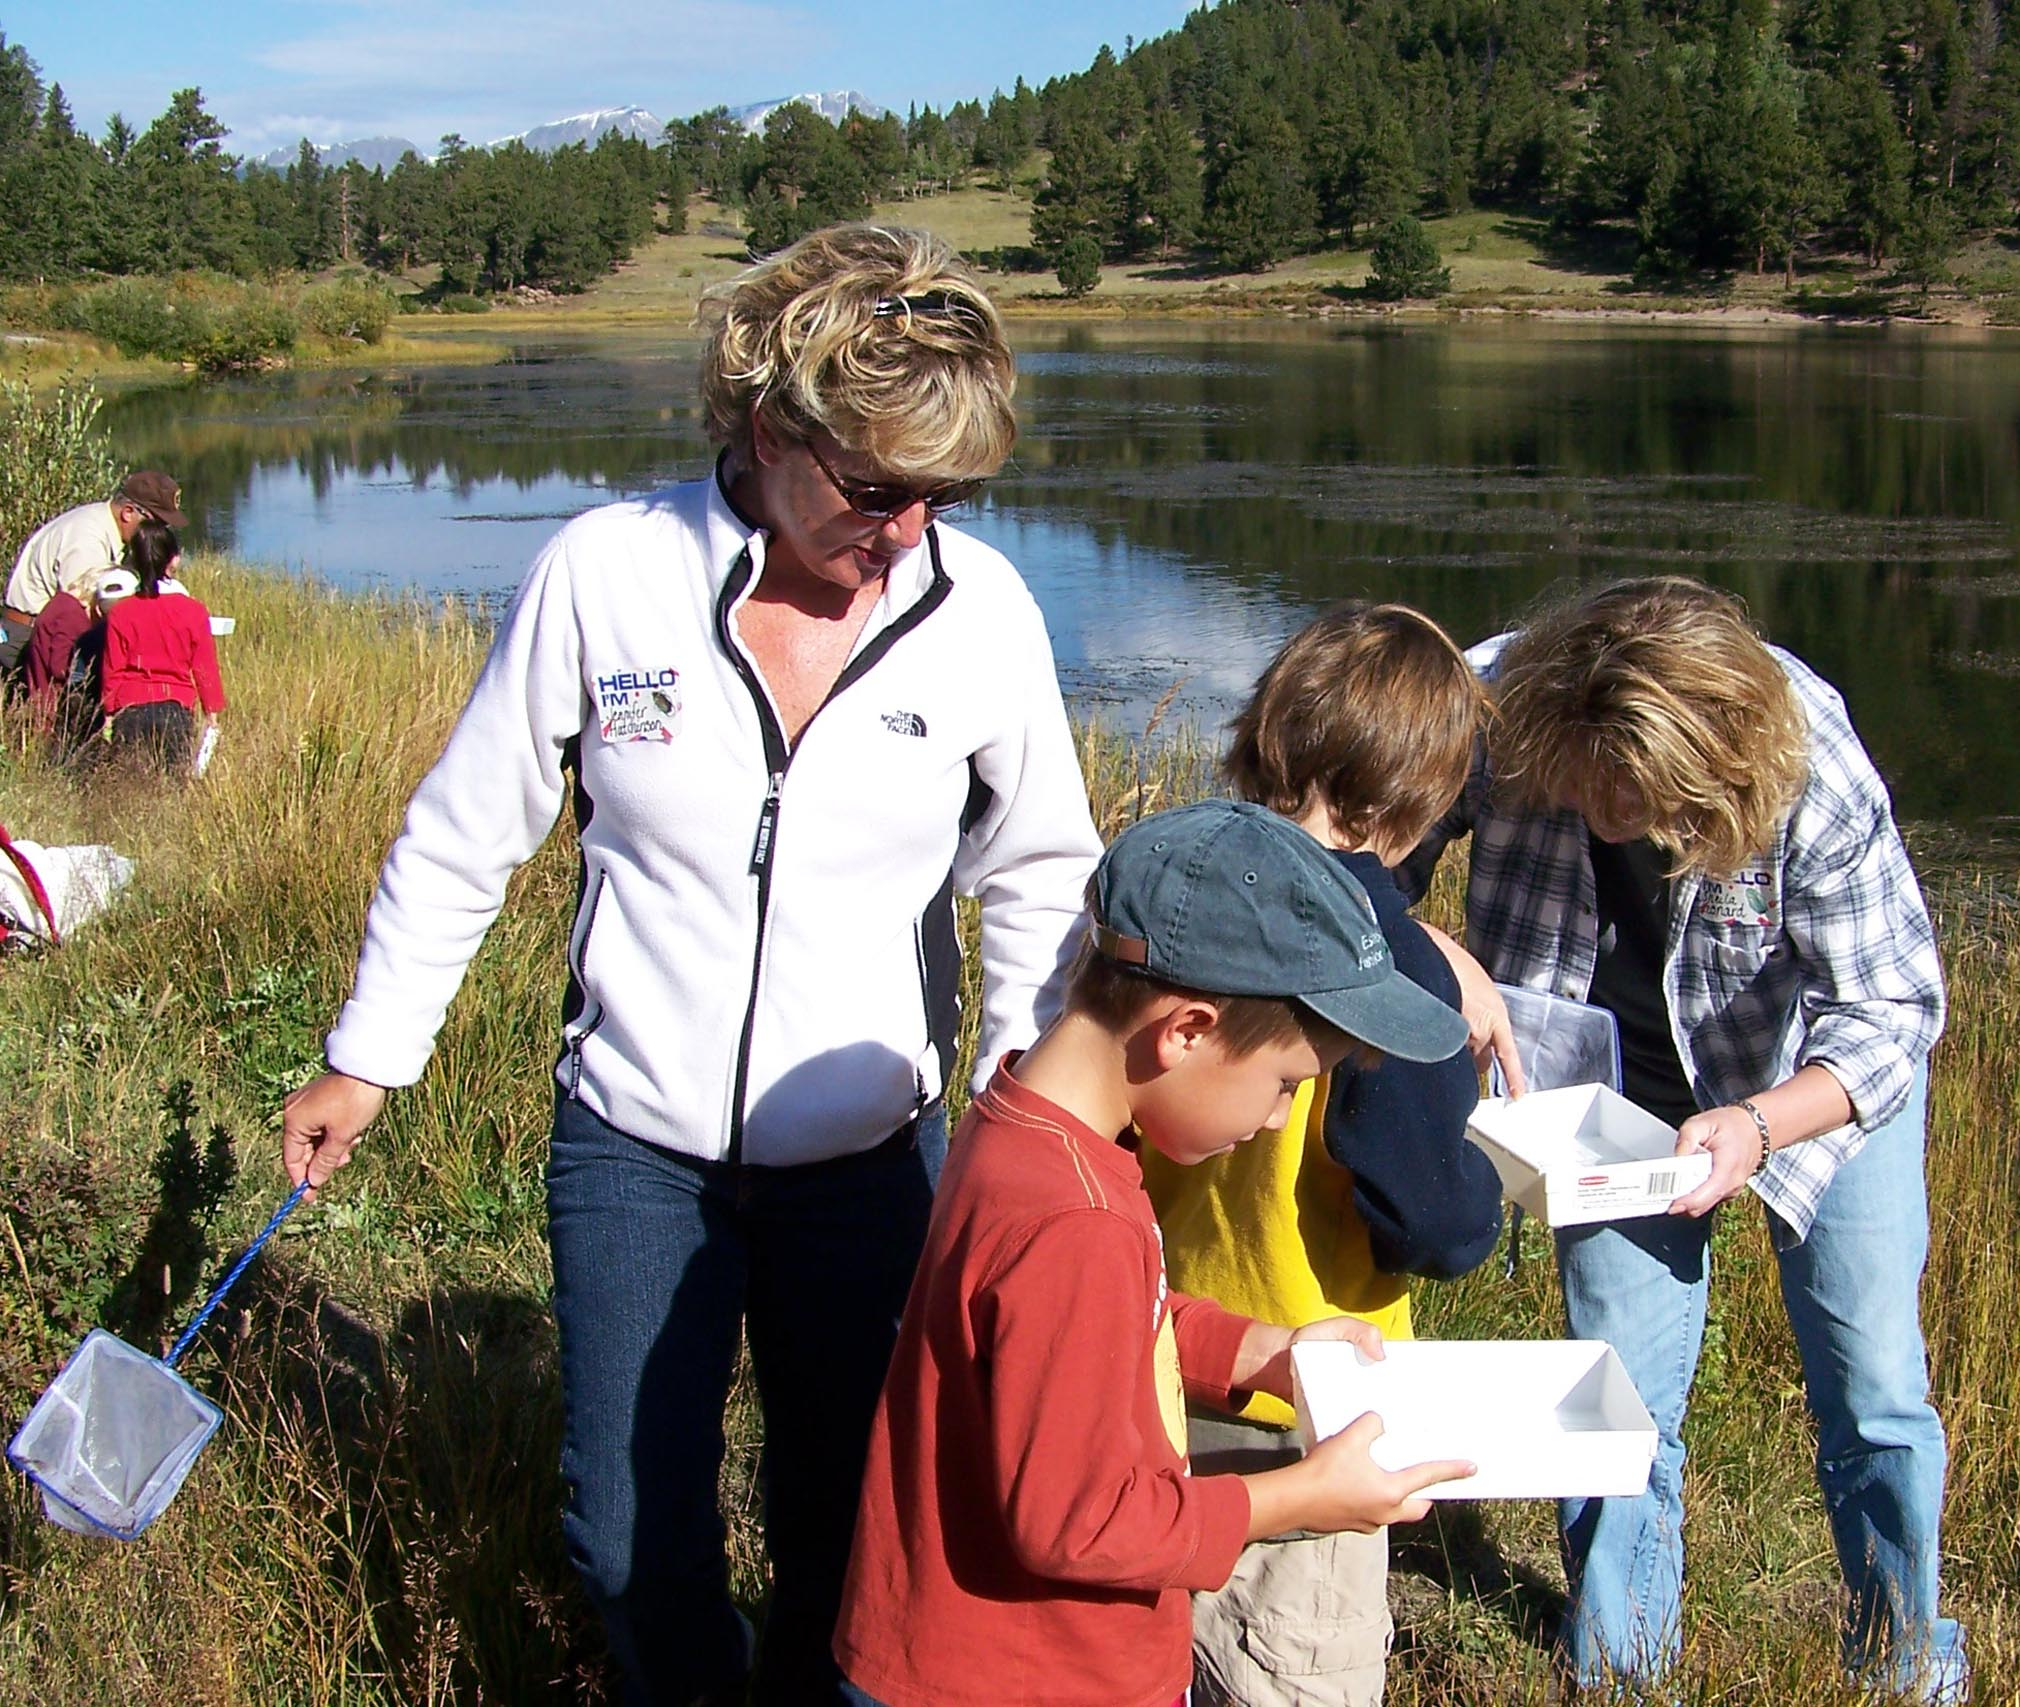 Teachers assist students exploring nature.